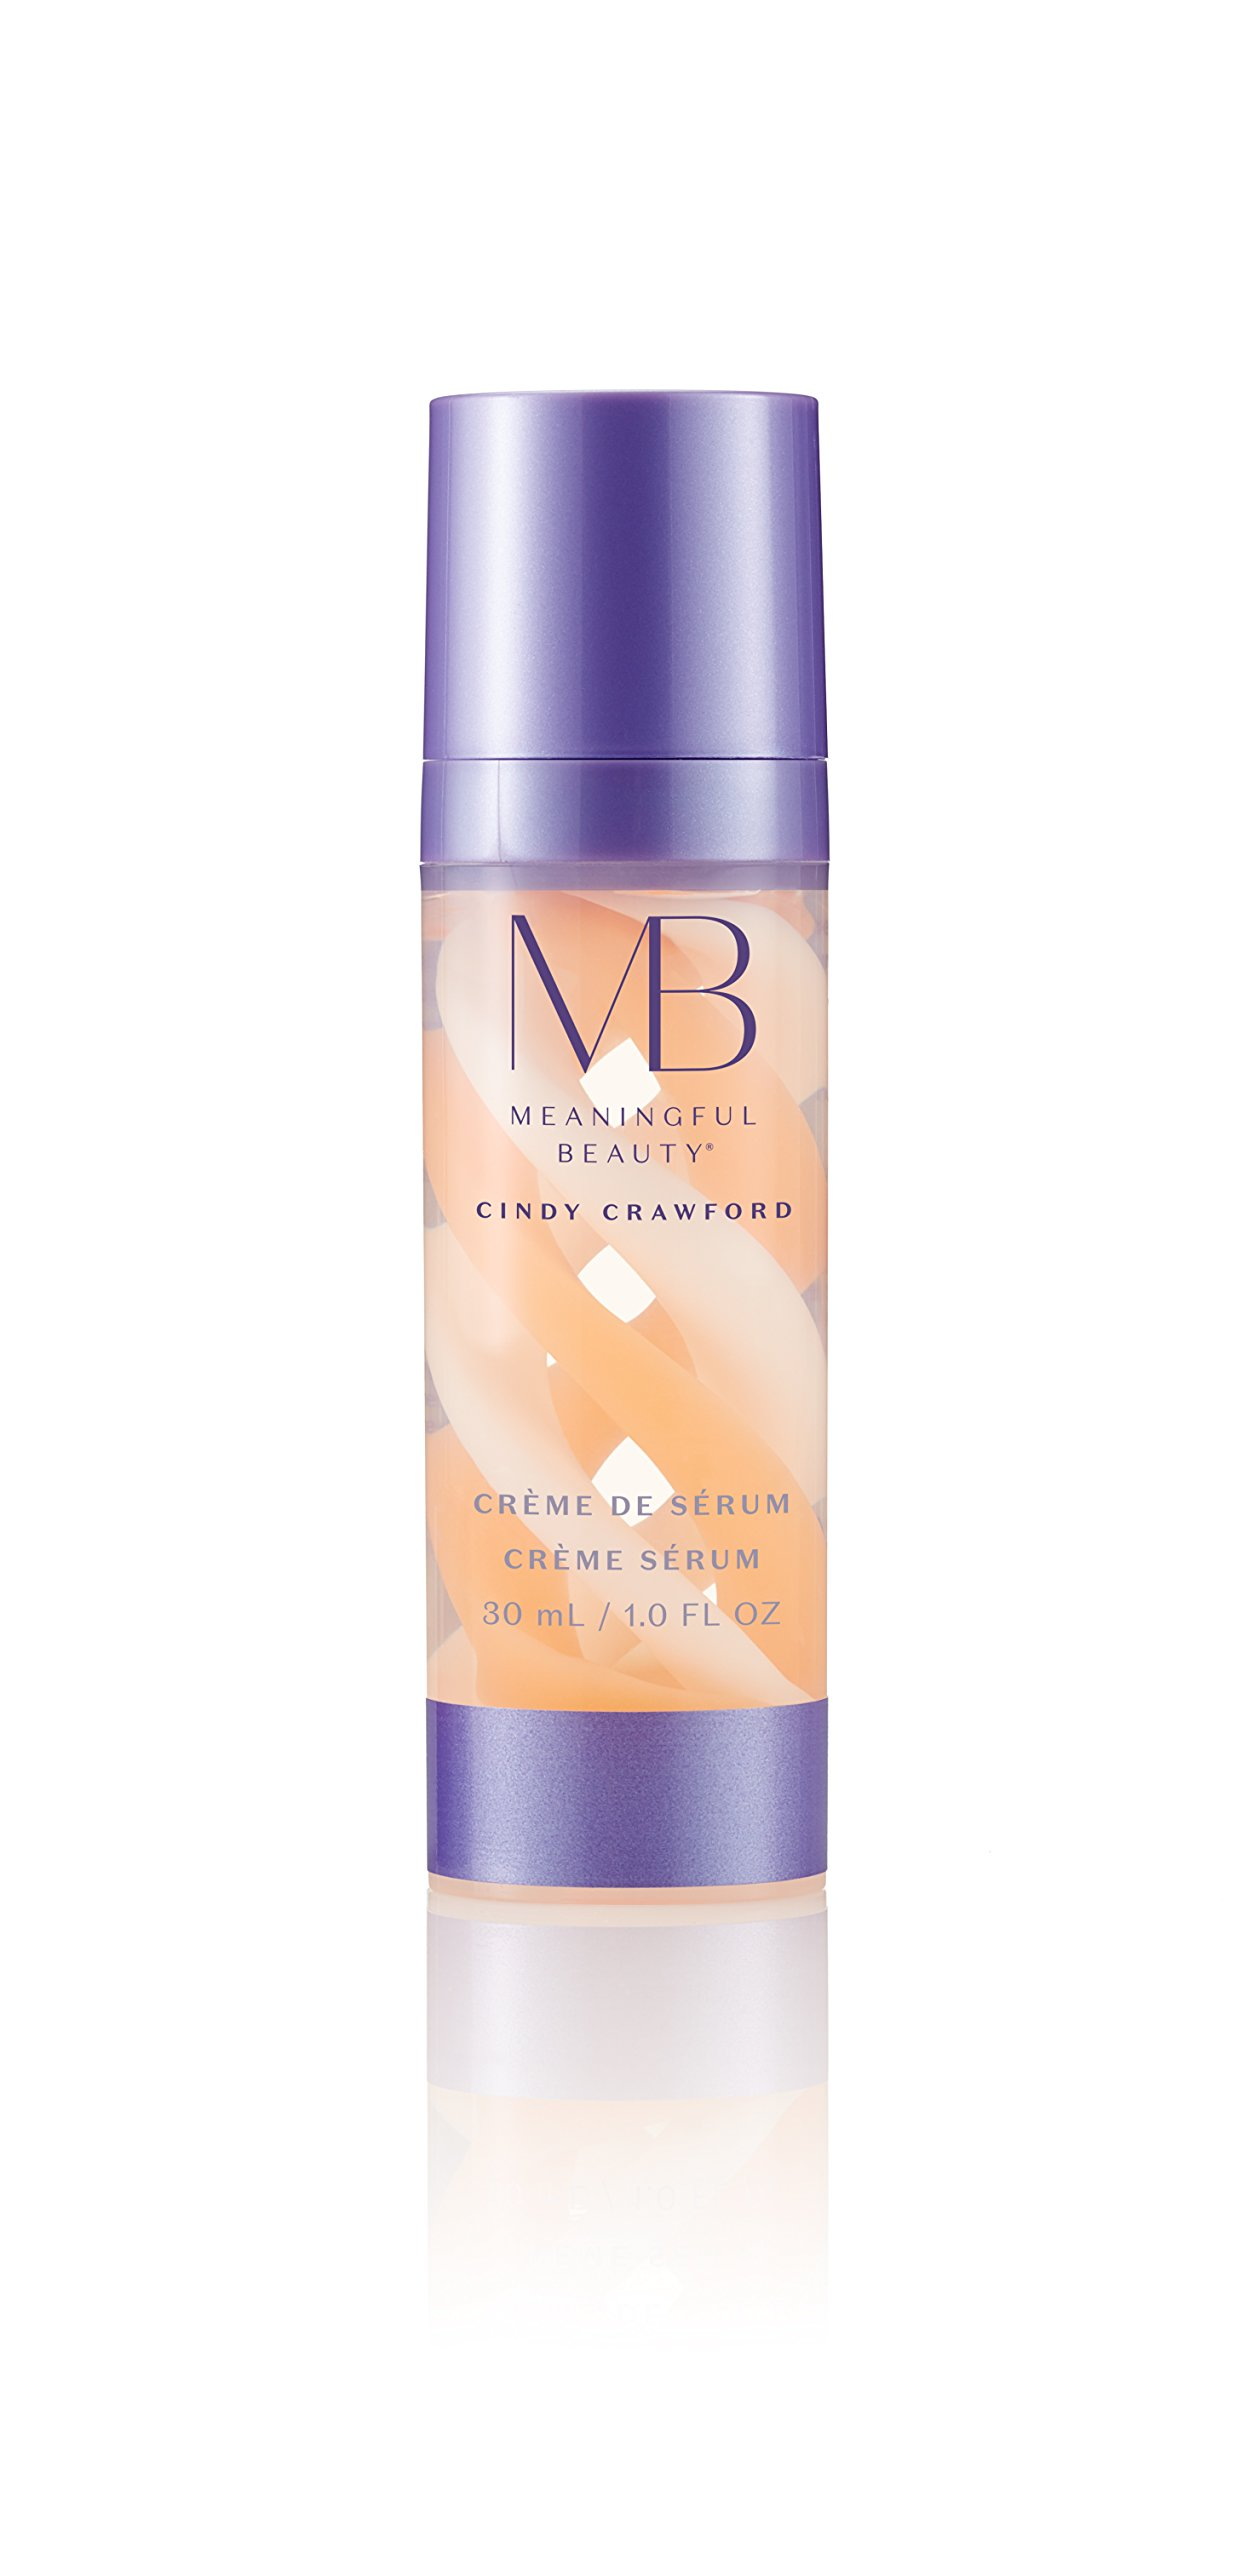 Meaningful Beauty - Crème de Serum - Melon Extract Night Moisturizer - 1 Ounce - MT.0353 by Meaningful Beauty